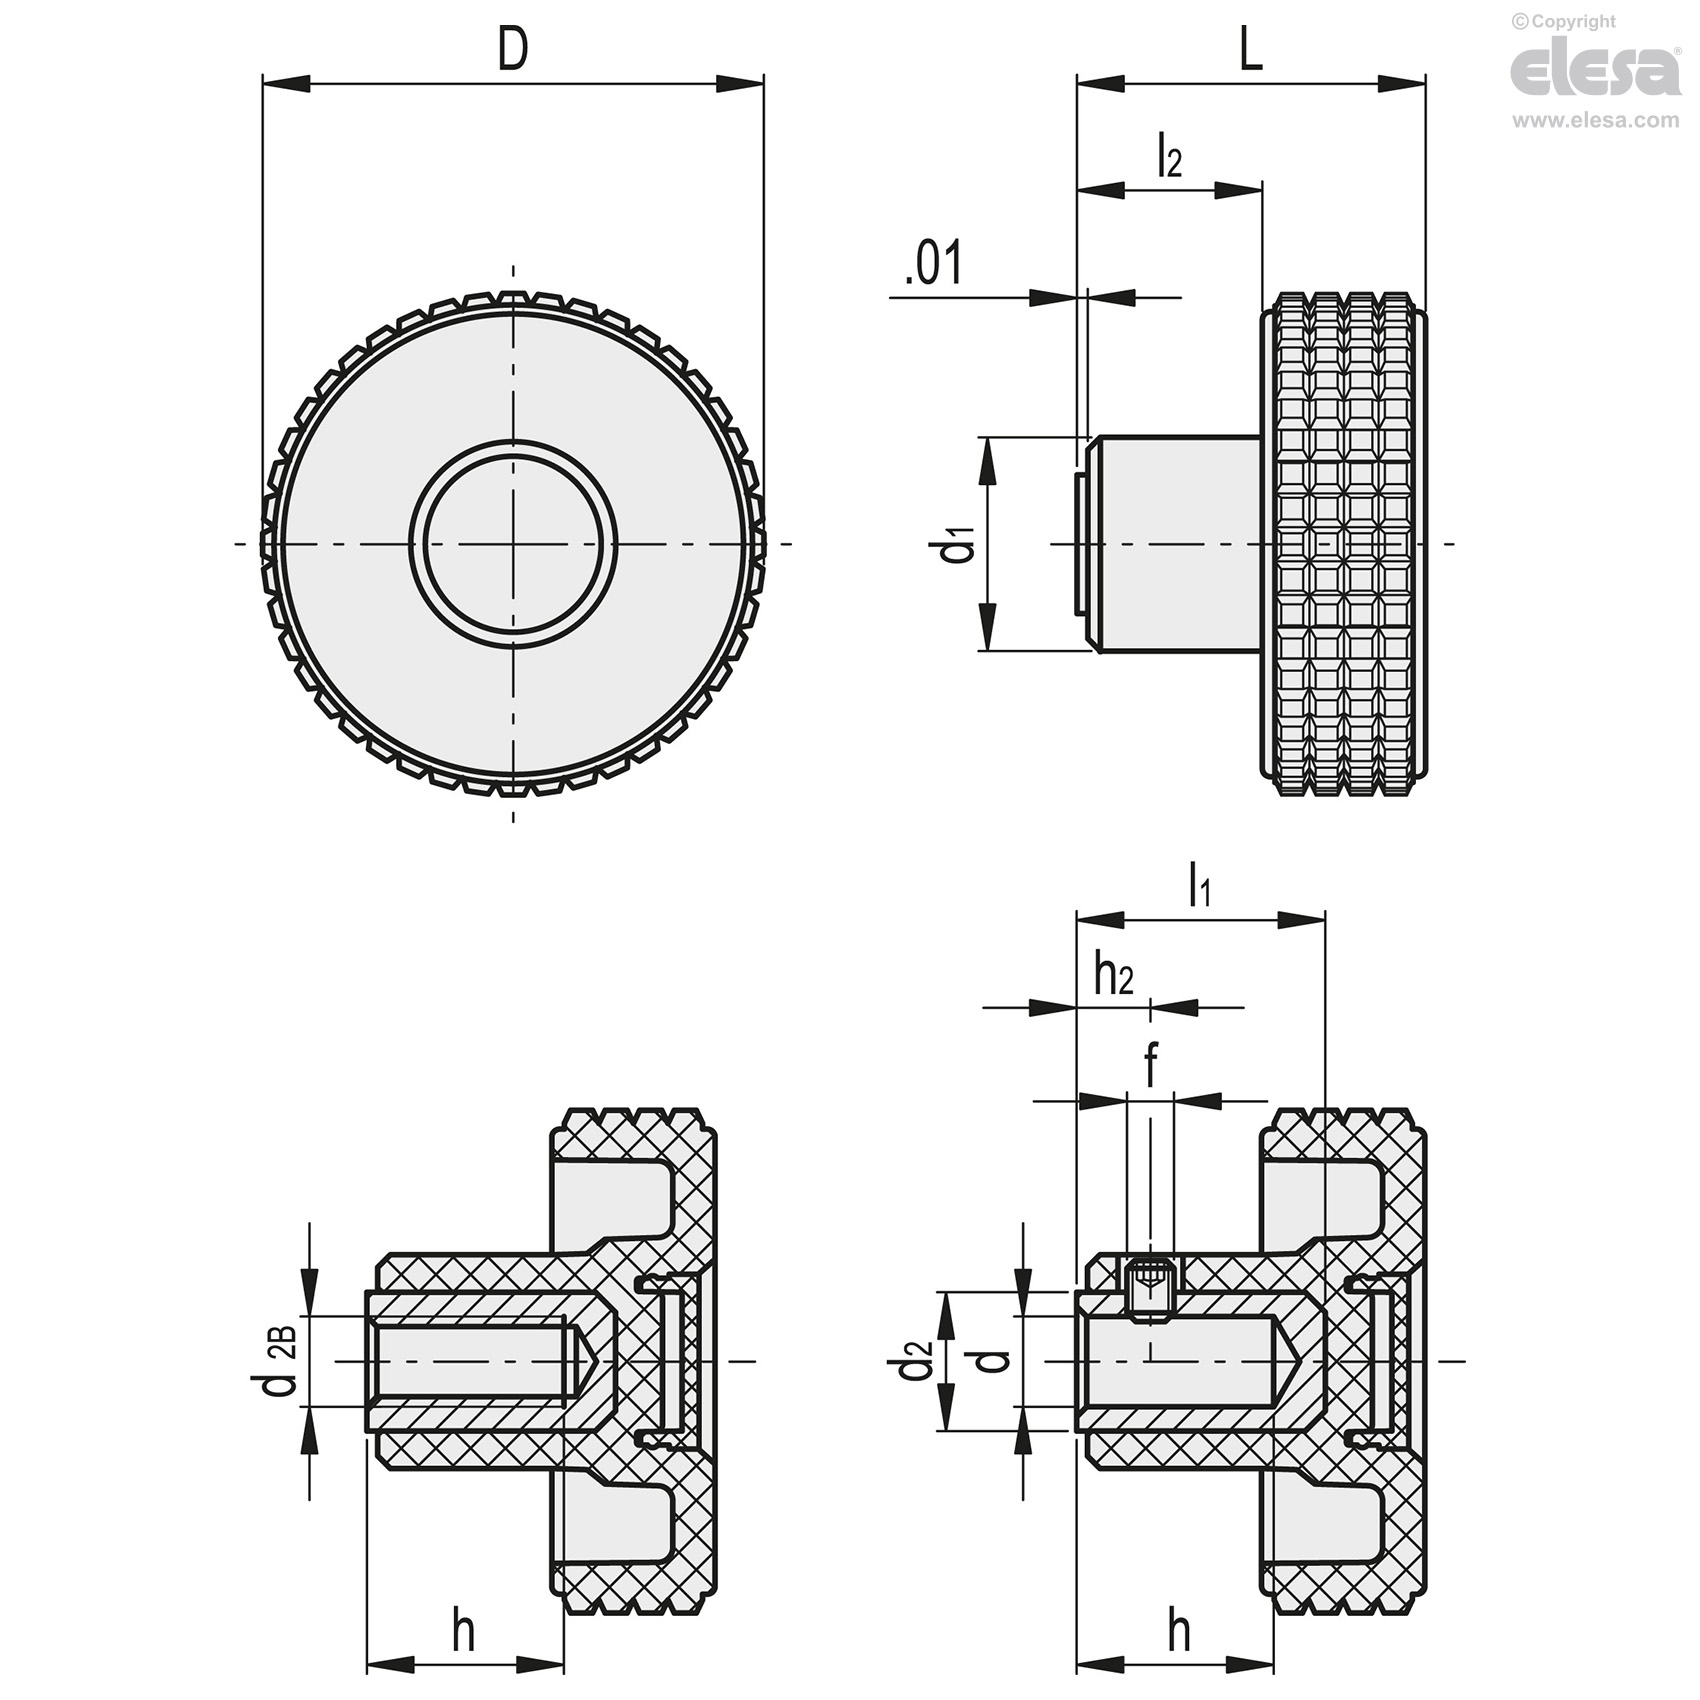 Mbt B Inch Sizes Diamond Cut Knurled Knobs How Parallel And Series Hydraulic Circuit Works Youtube Brass Boss